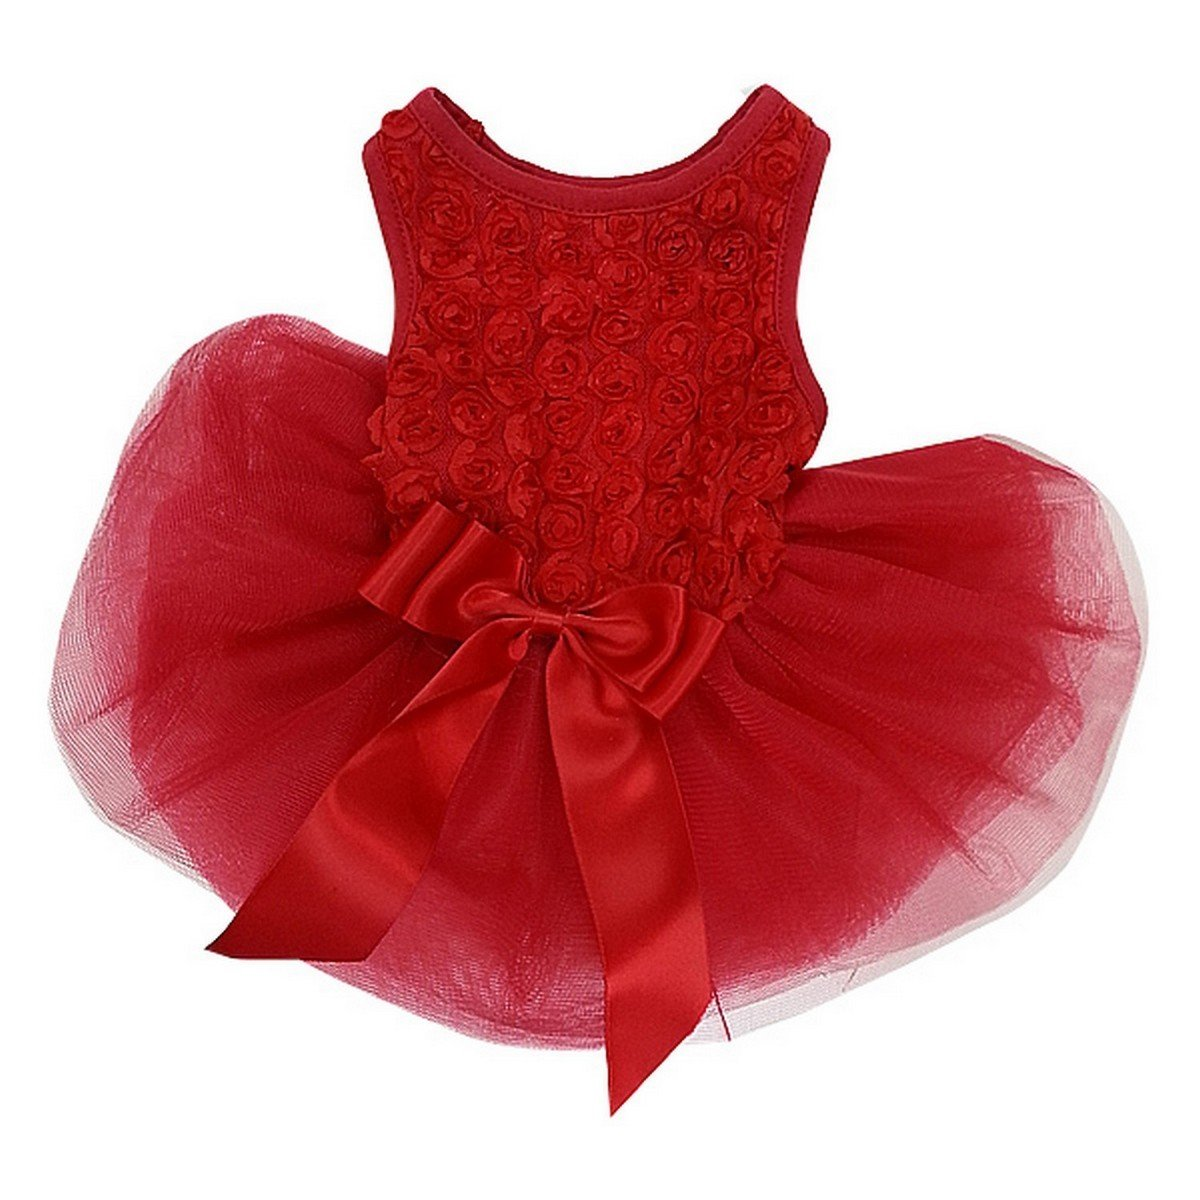 Red S Red S Kirei Sui pinkttes Dog Dress Dog Dress Small Red